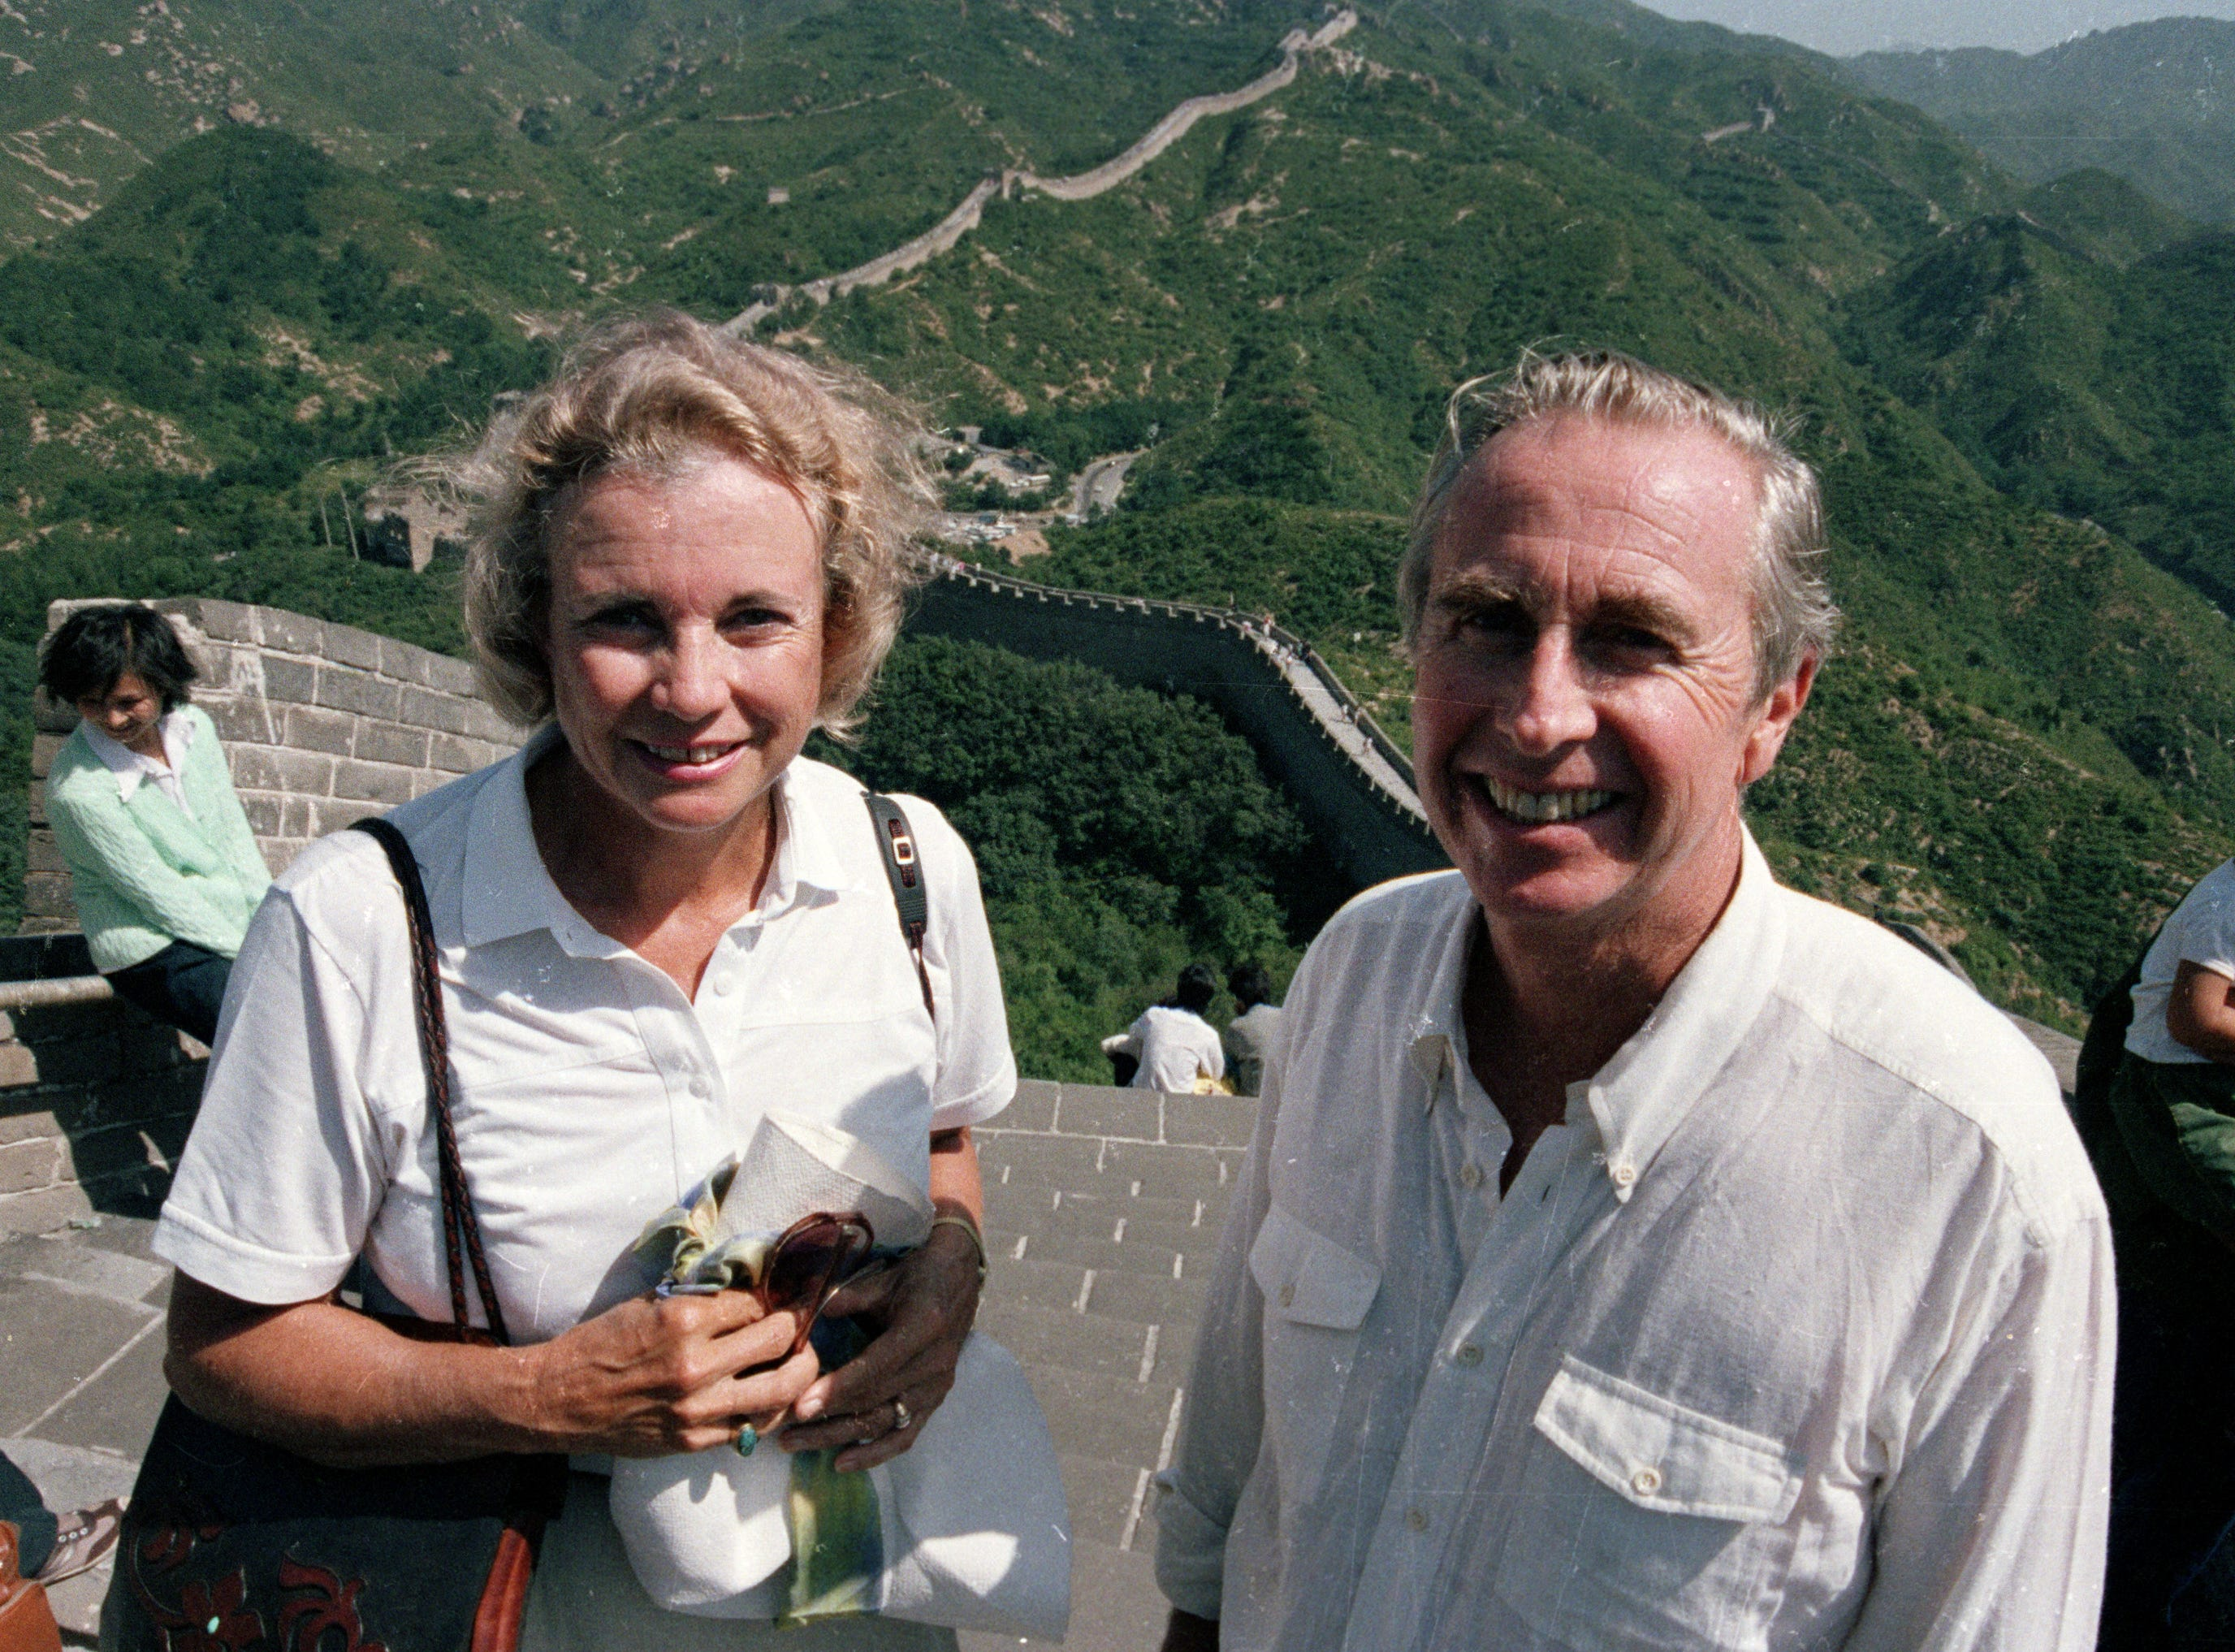 U.S. Supreme Court Justice Sandra Day O'Connor and her husband John J. O'Connor visit the Great Wall of China at Badaling, north of Beijing, Aug. 28, 1987.